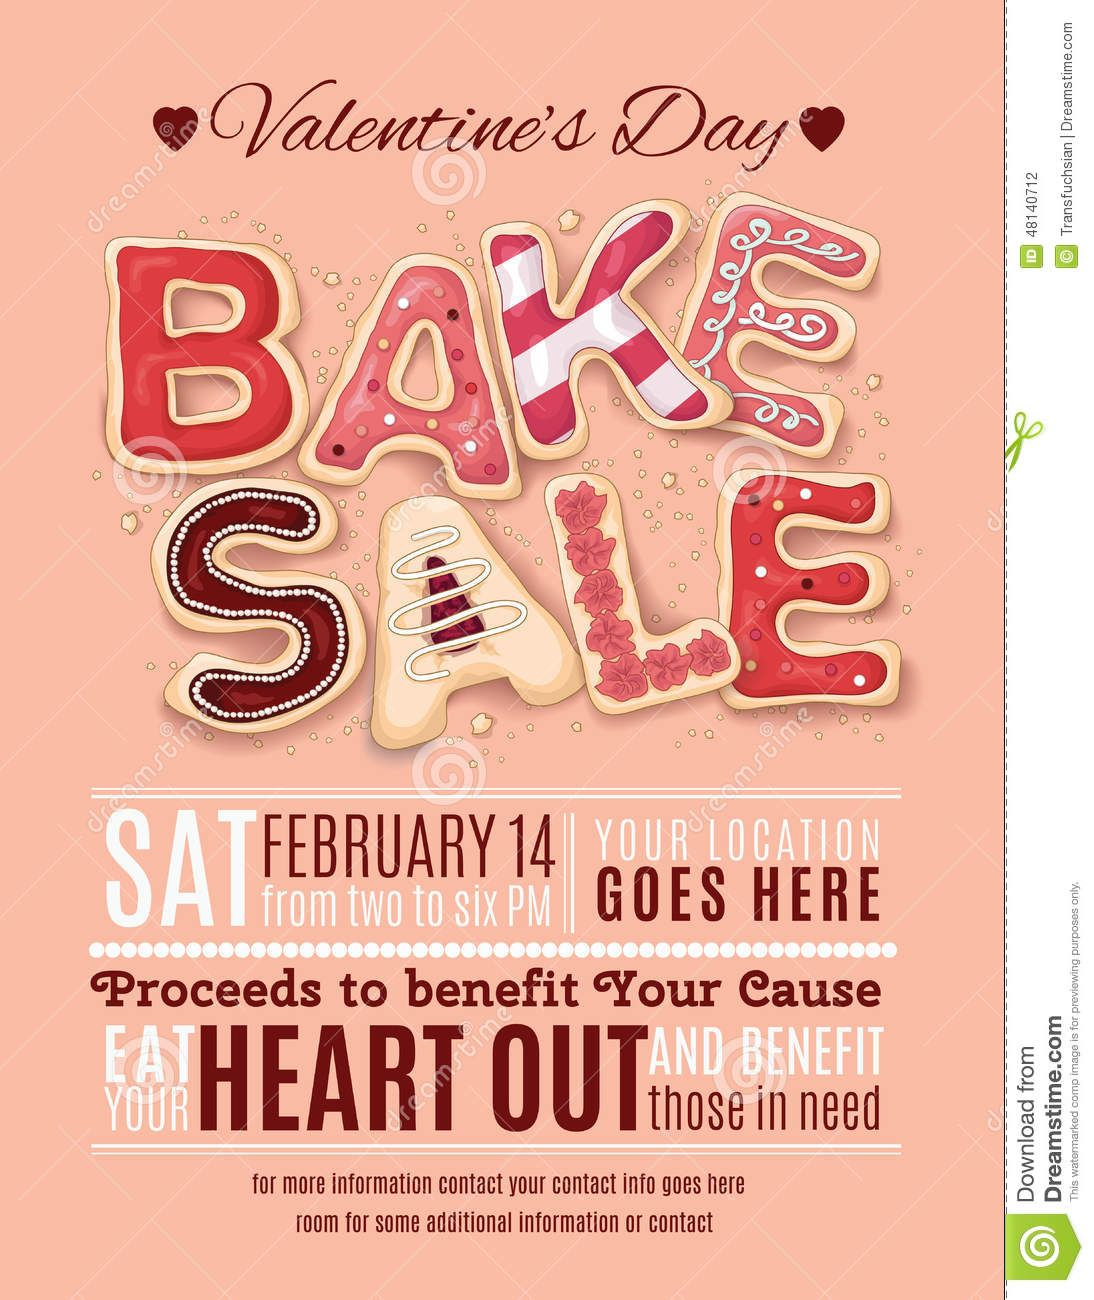 Valentines Day Bake Sale Flyer Template  Download From Over